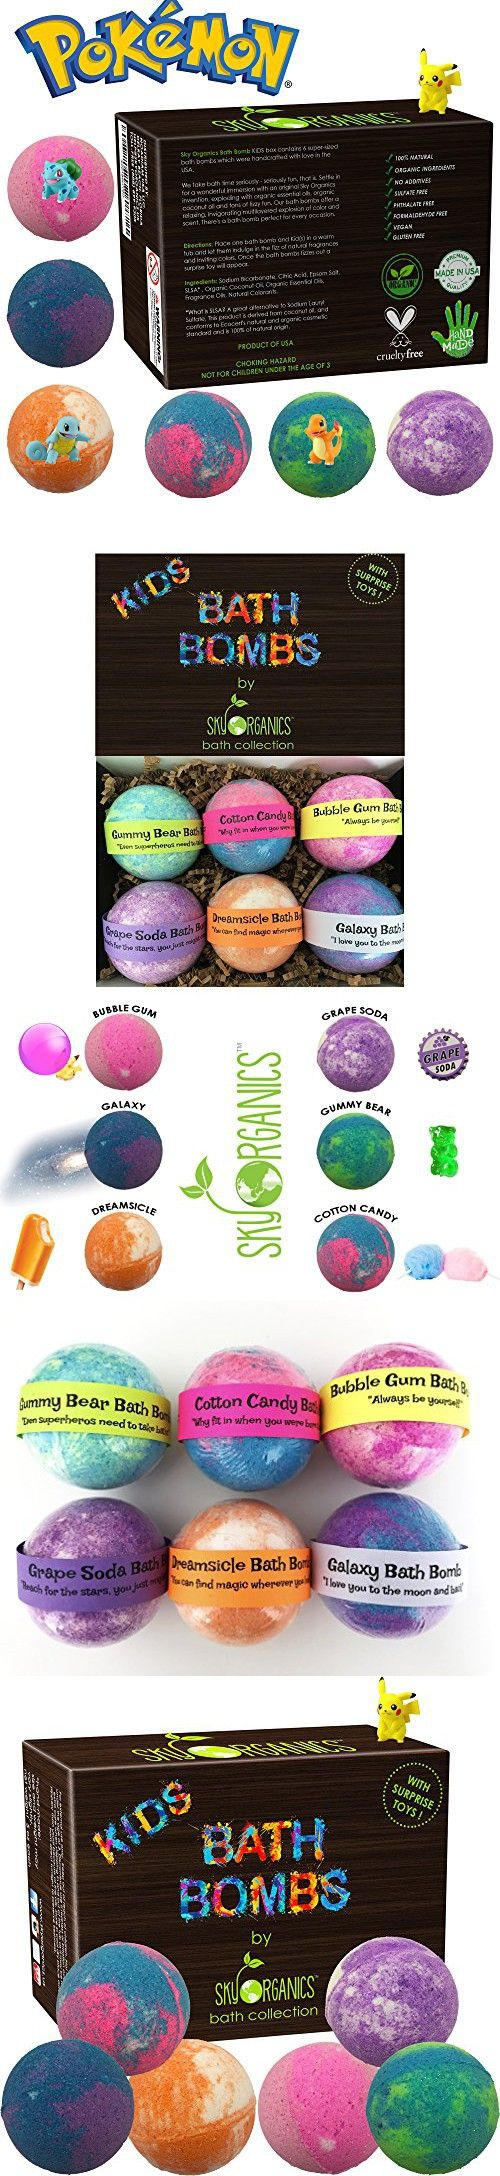 Kids Bath Bombs Gift Set with Surprise Toys, 6x5oz Fun Assorted Colored XL Bath Bombs, Kid Safe, Gender Neutral with Organic Essential Oils -Handmade in the USA Organic Bubble Bath Fizzy